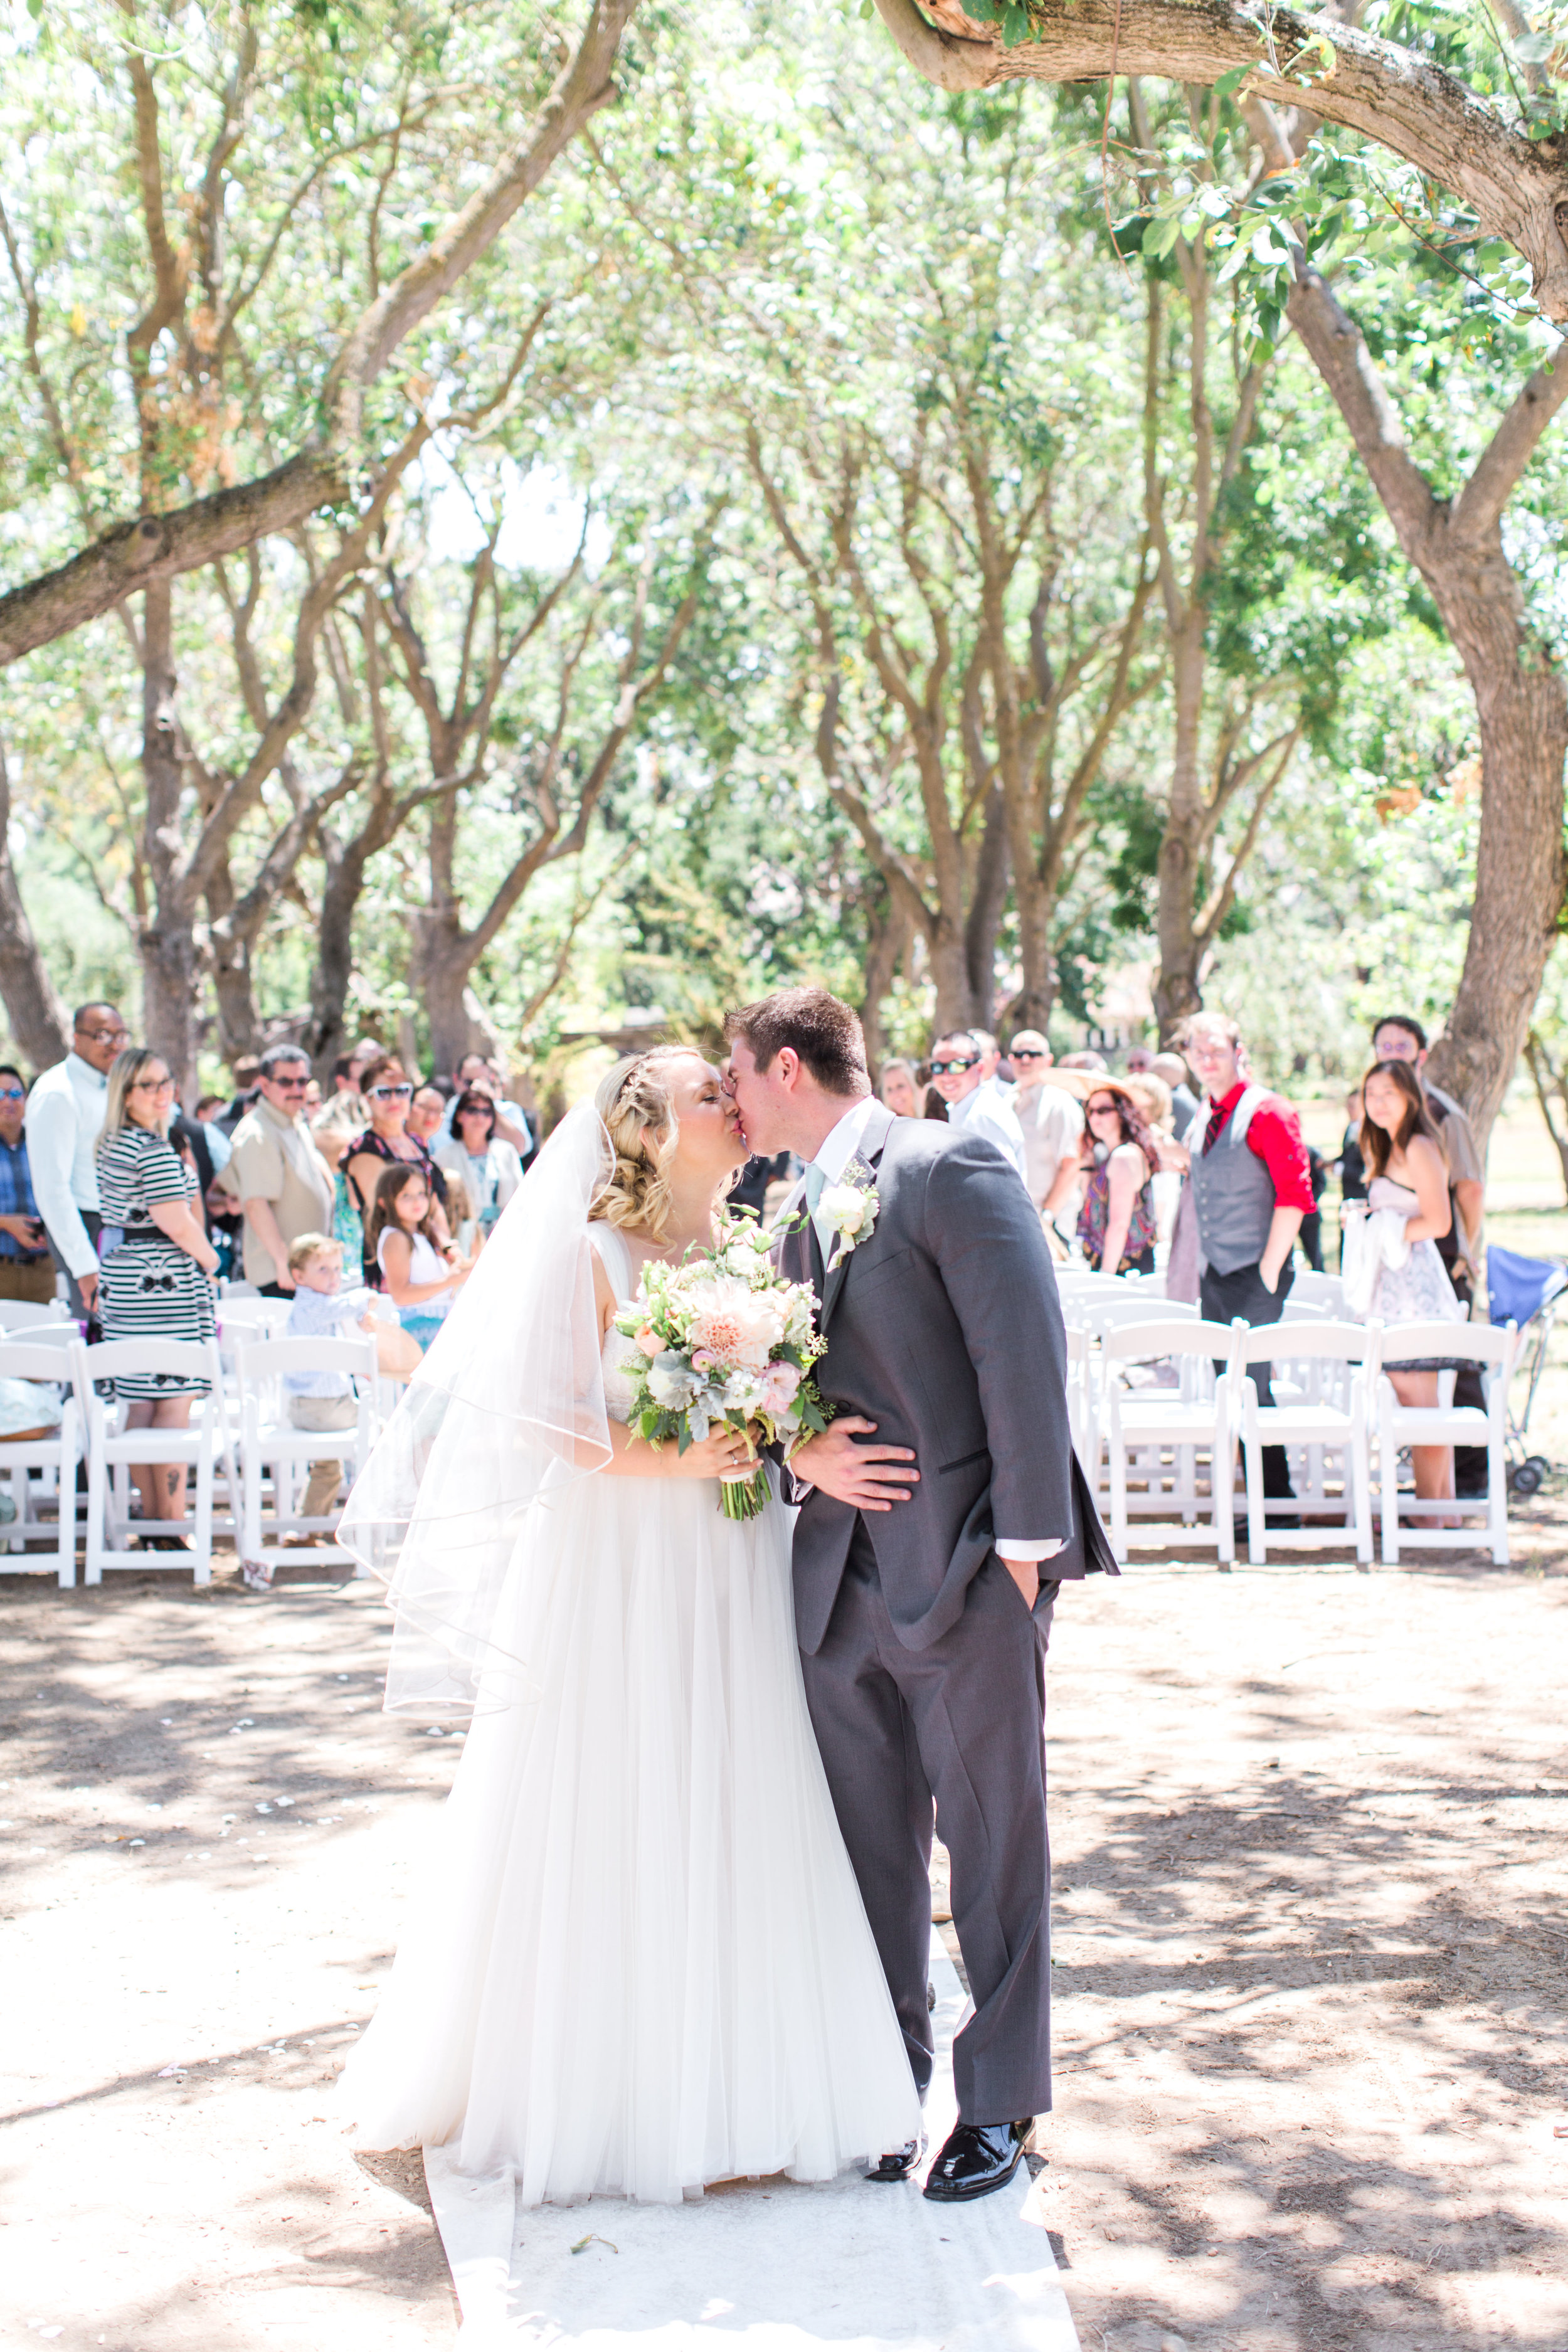 southern-inspired-wedding-at-ravenswood-historic-site-4717.jpg